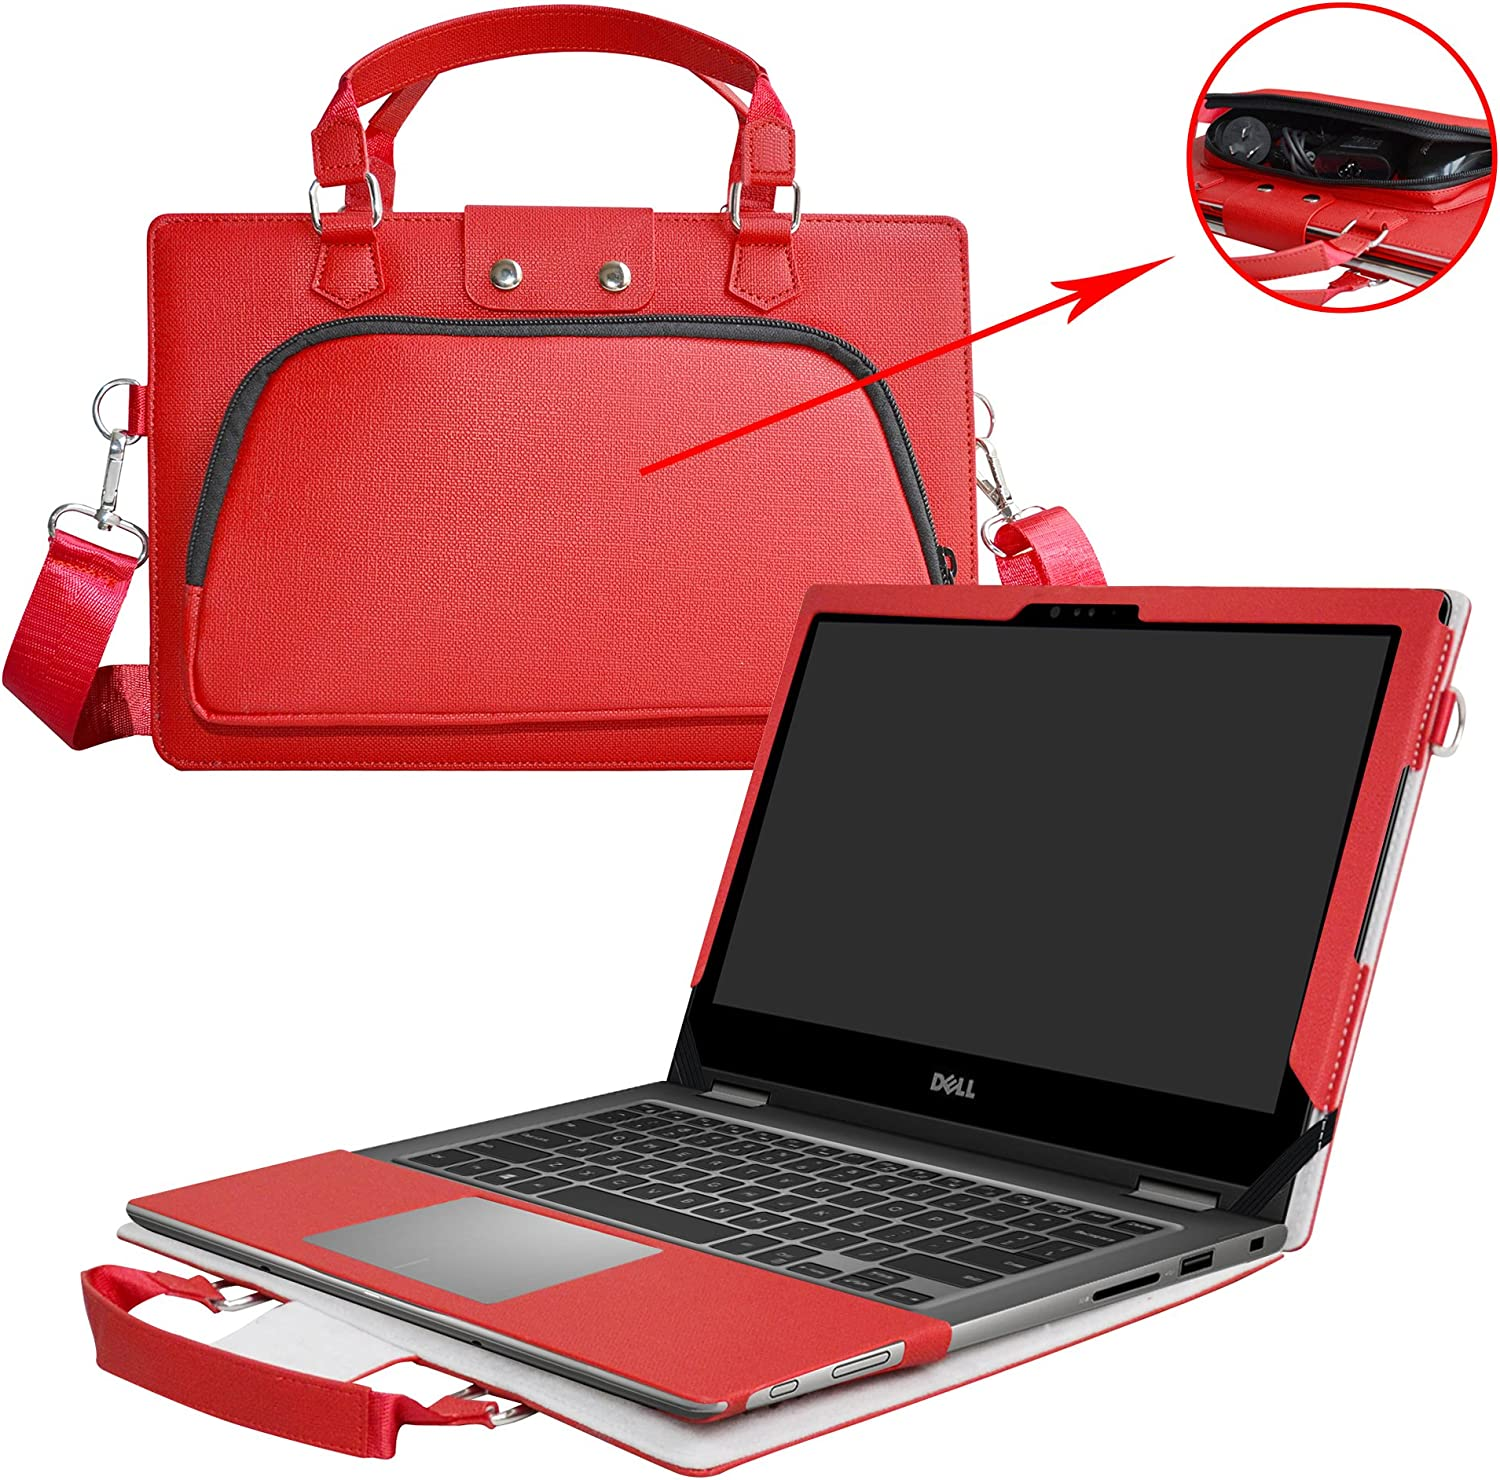 Inspiron 13 2-in-1 7373/Inspiron 13 7370 Case,2 in 1 Accurately Designed Protective PU Cover + Portable Carrying Bag for 13.3